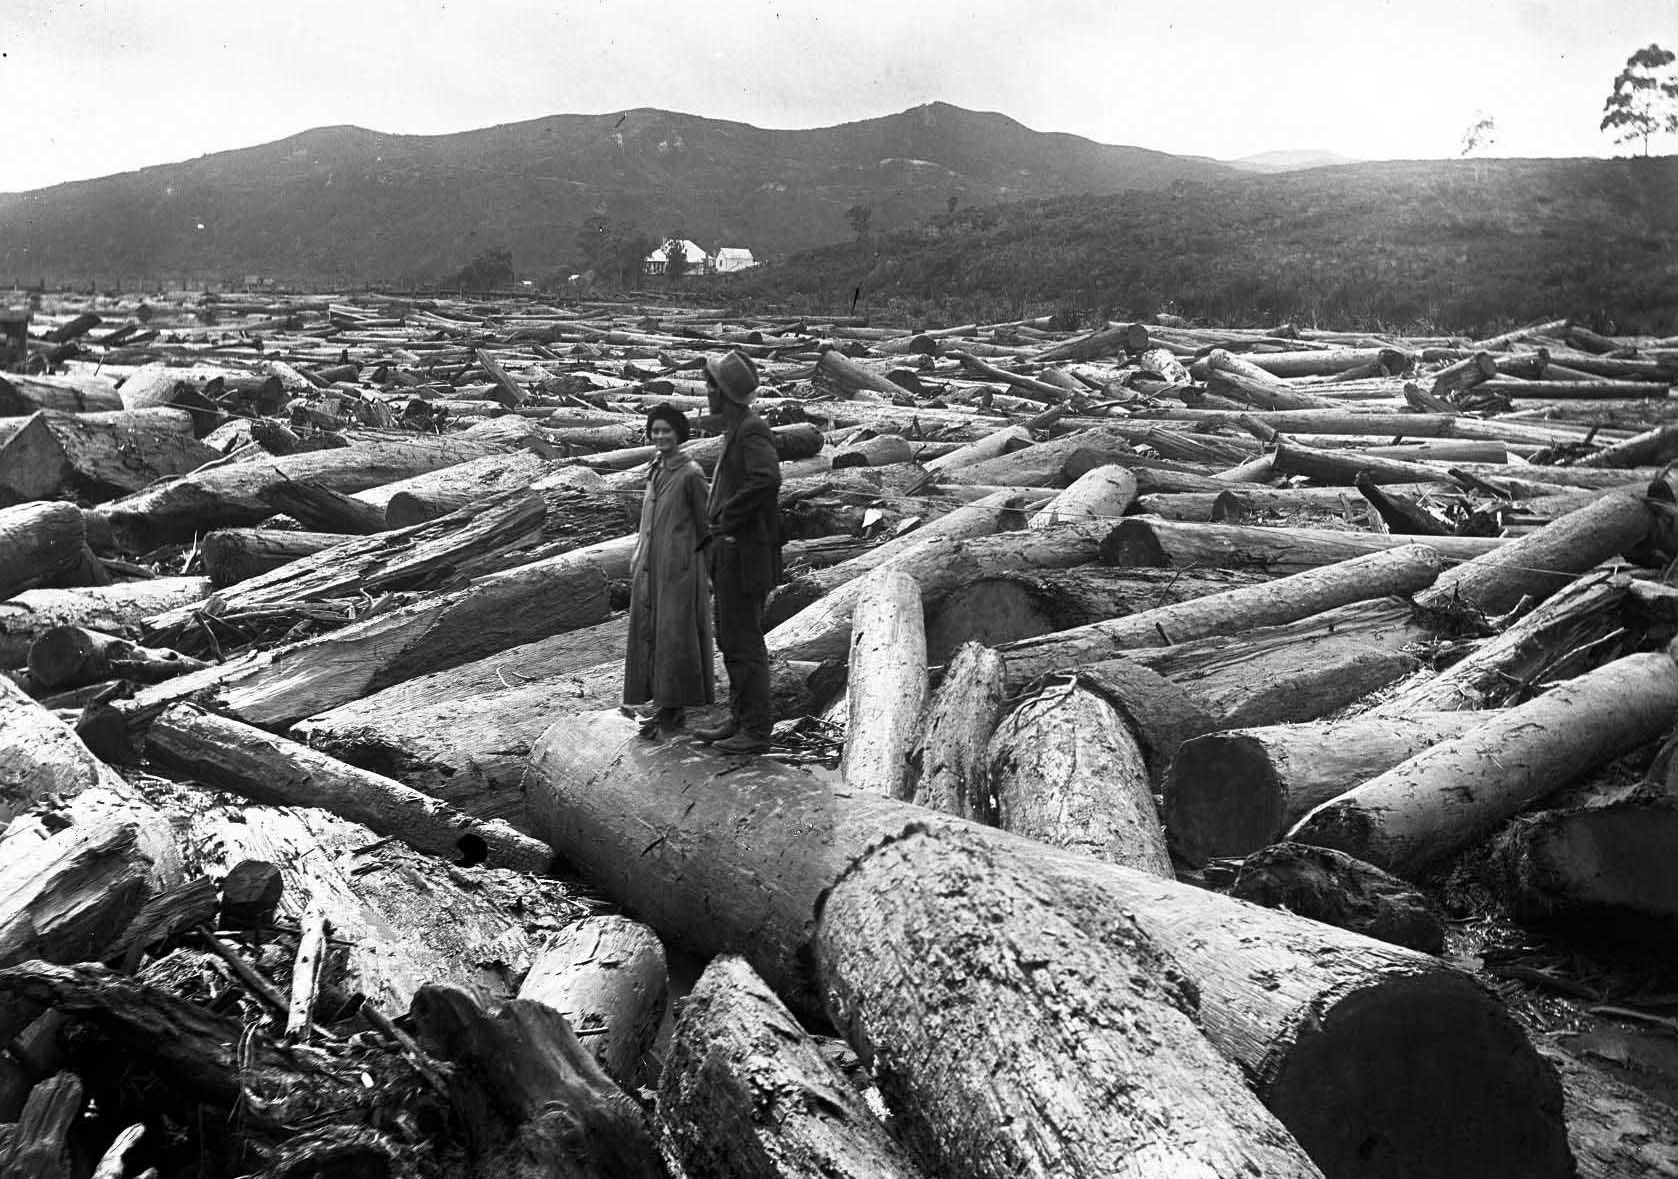 Kauri logs piled up near Coroglen after a log drive down the Waiwawa River. Two people stand on one of the logs